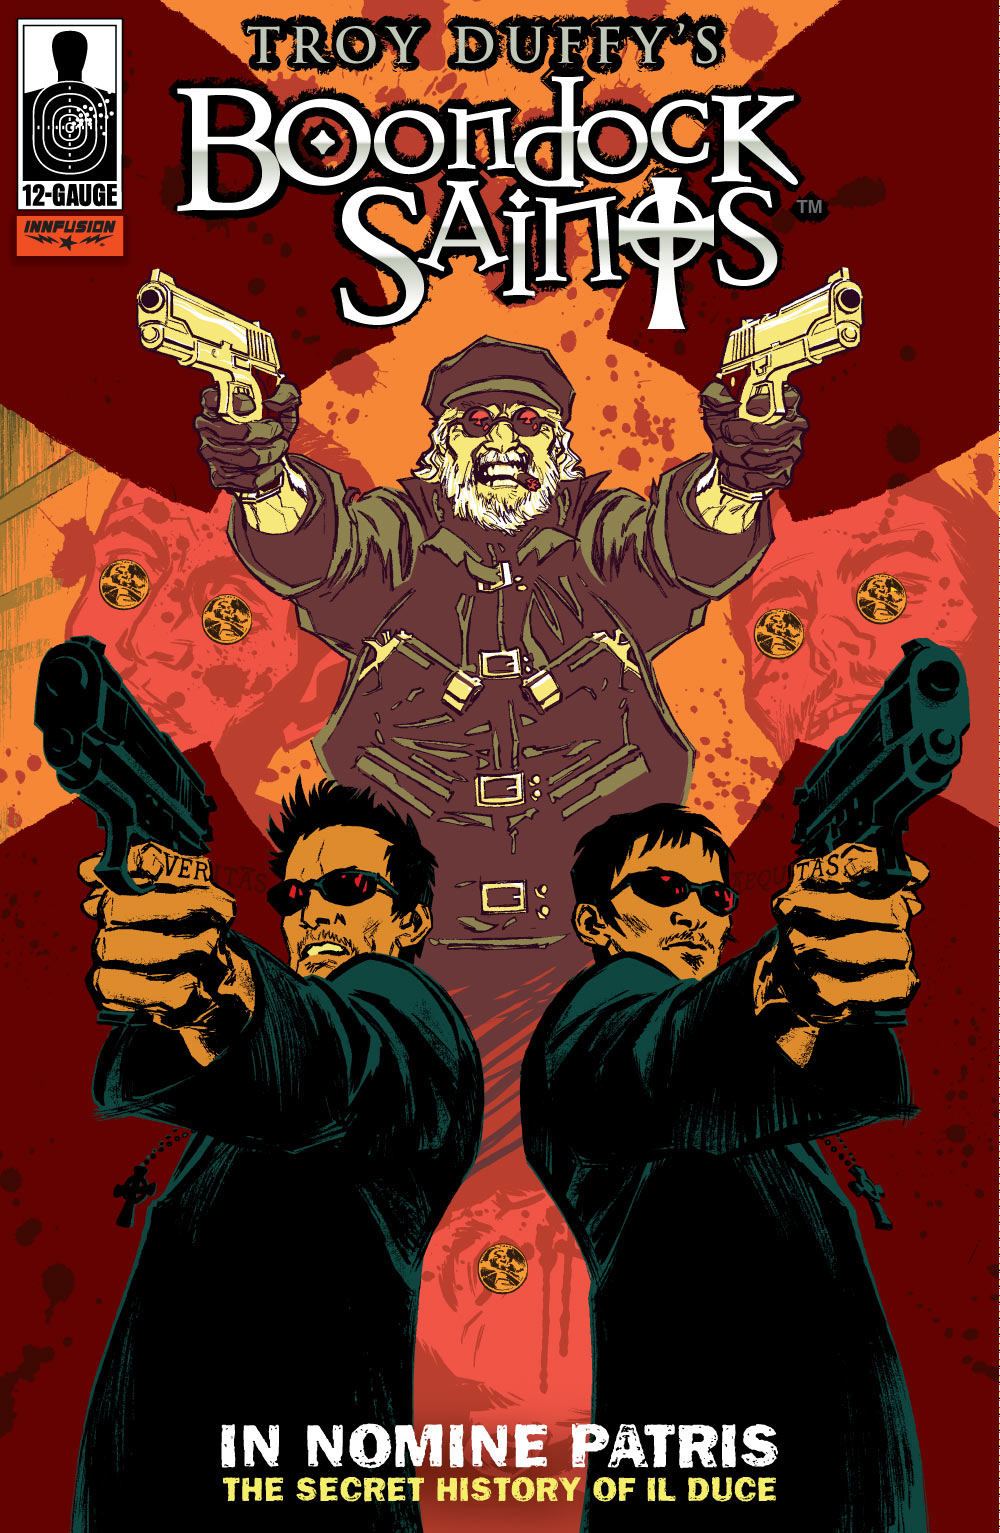 Boondock Saints #1